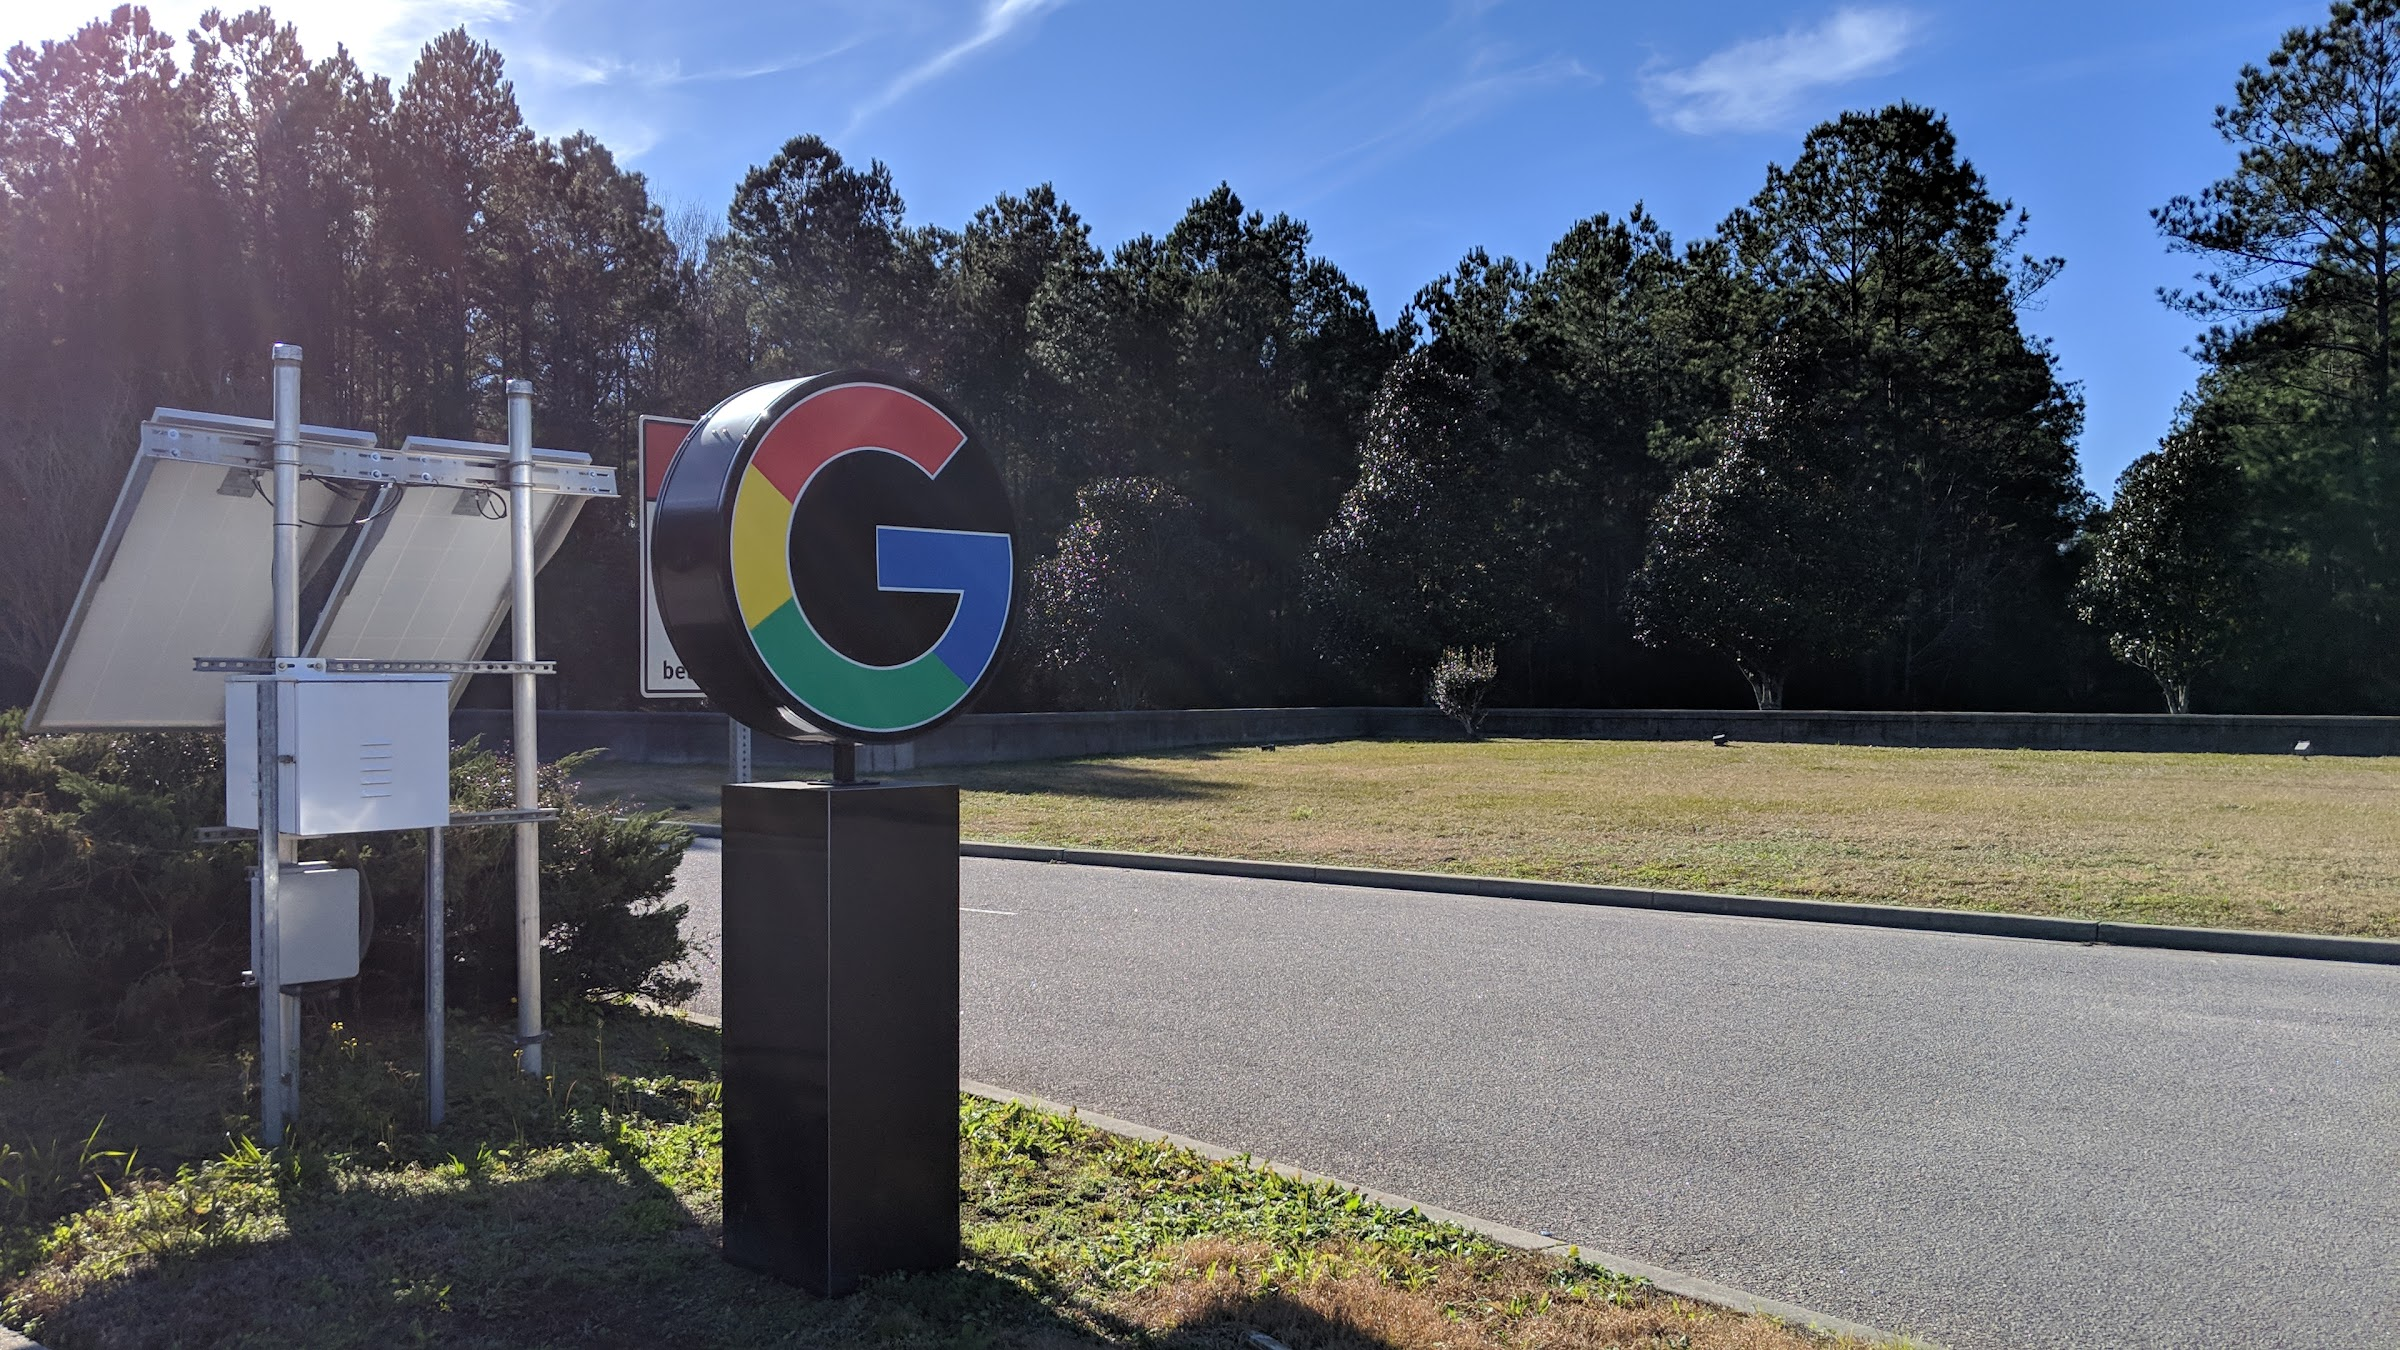 Google Berkeley County SC data center entrance